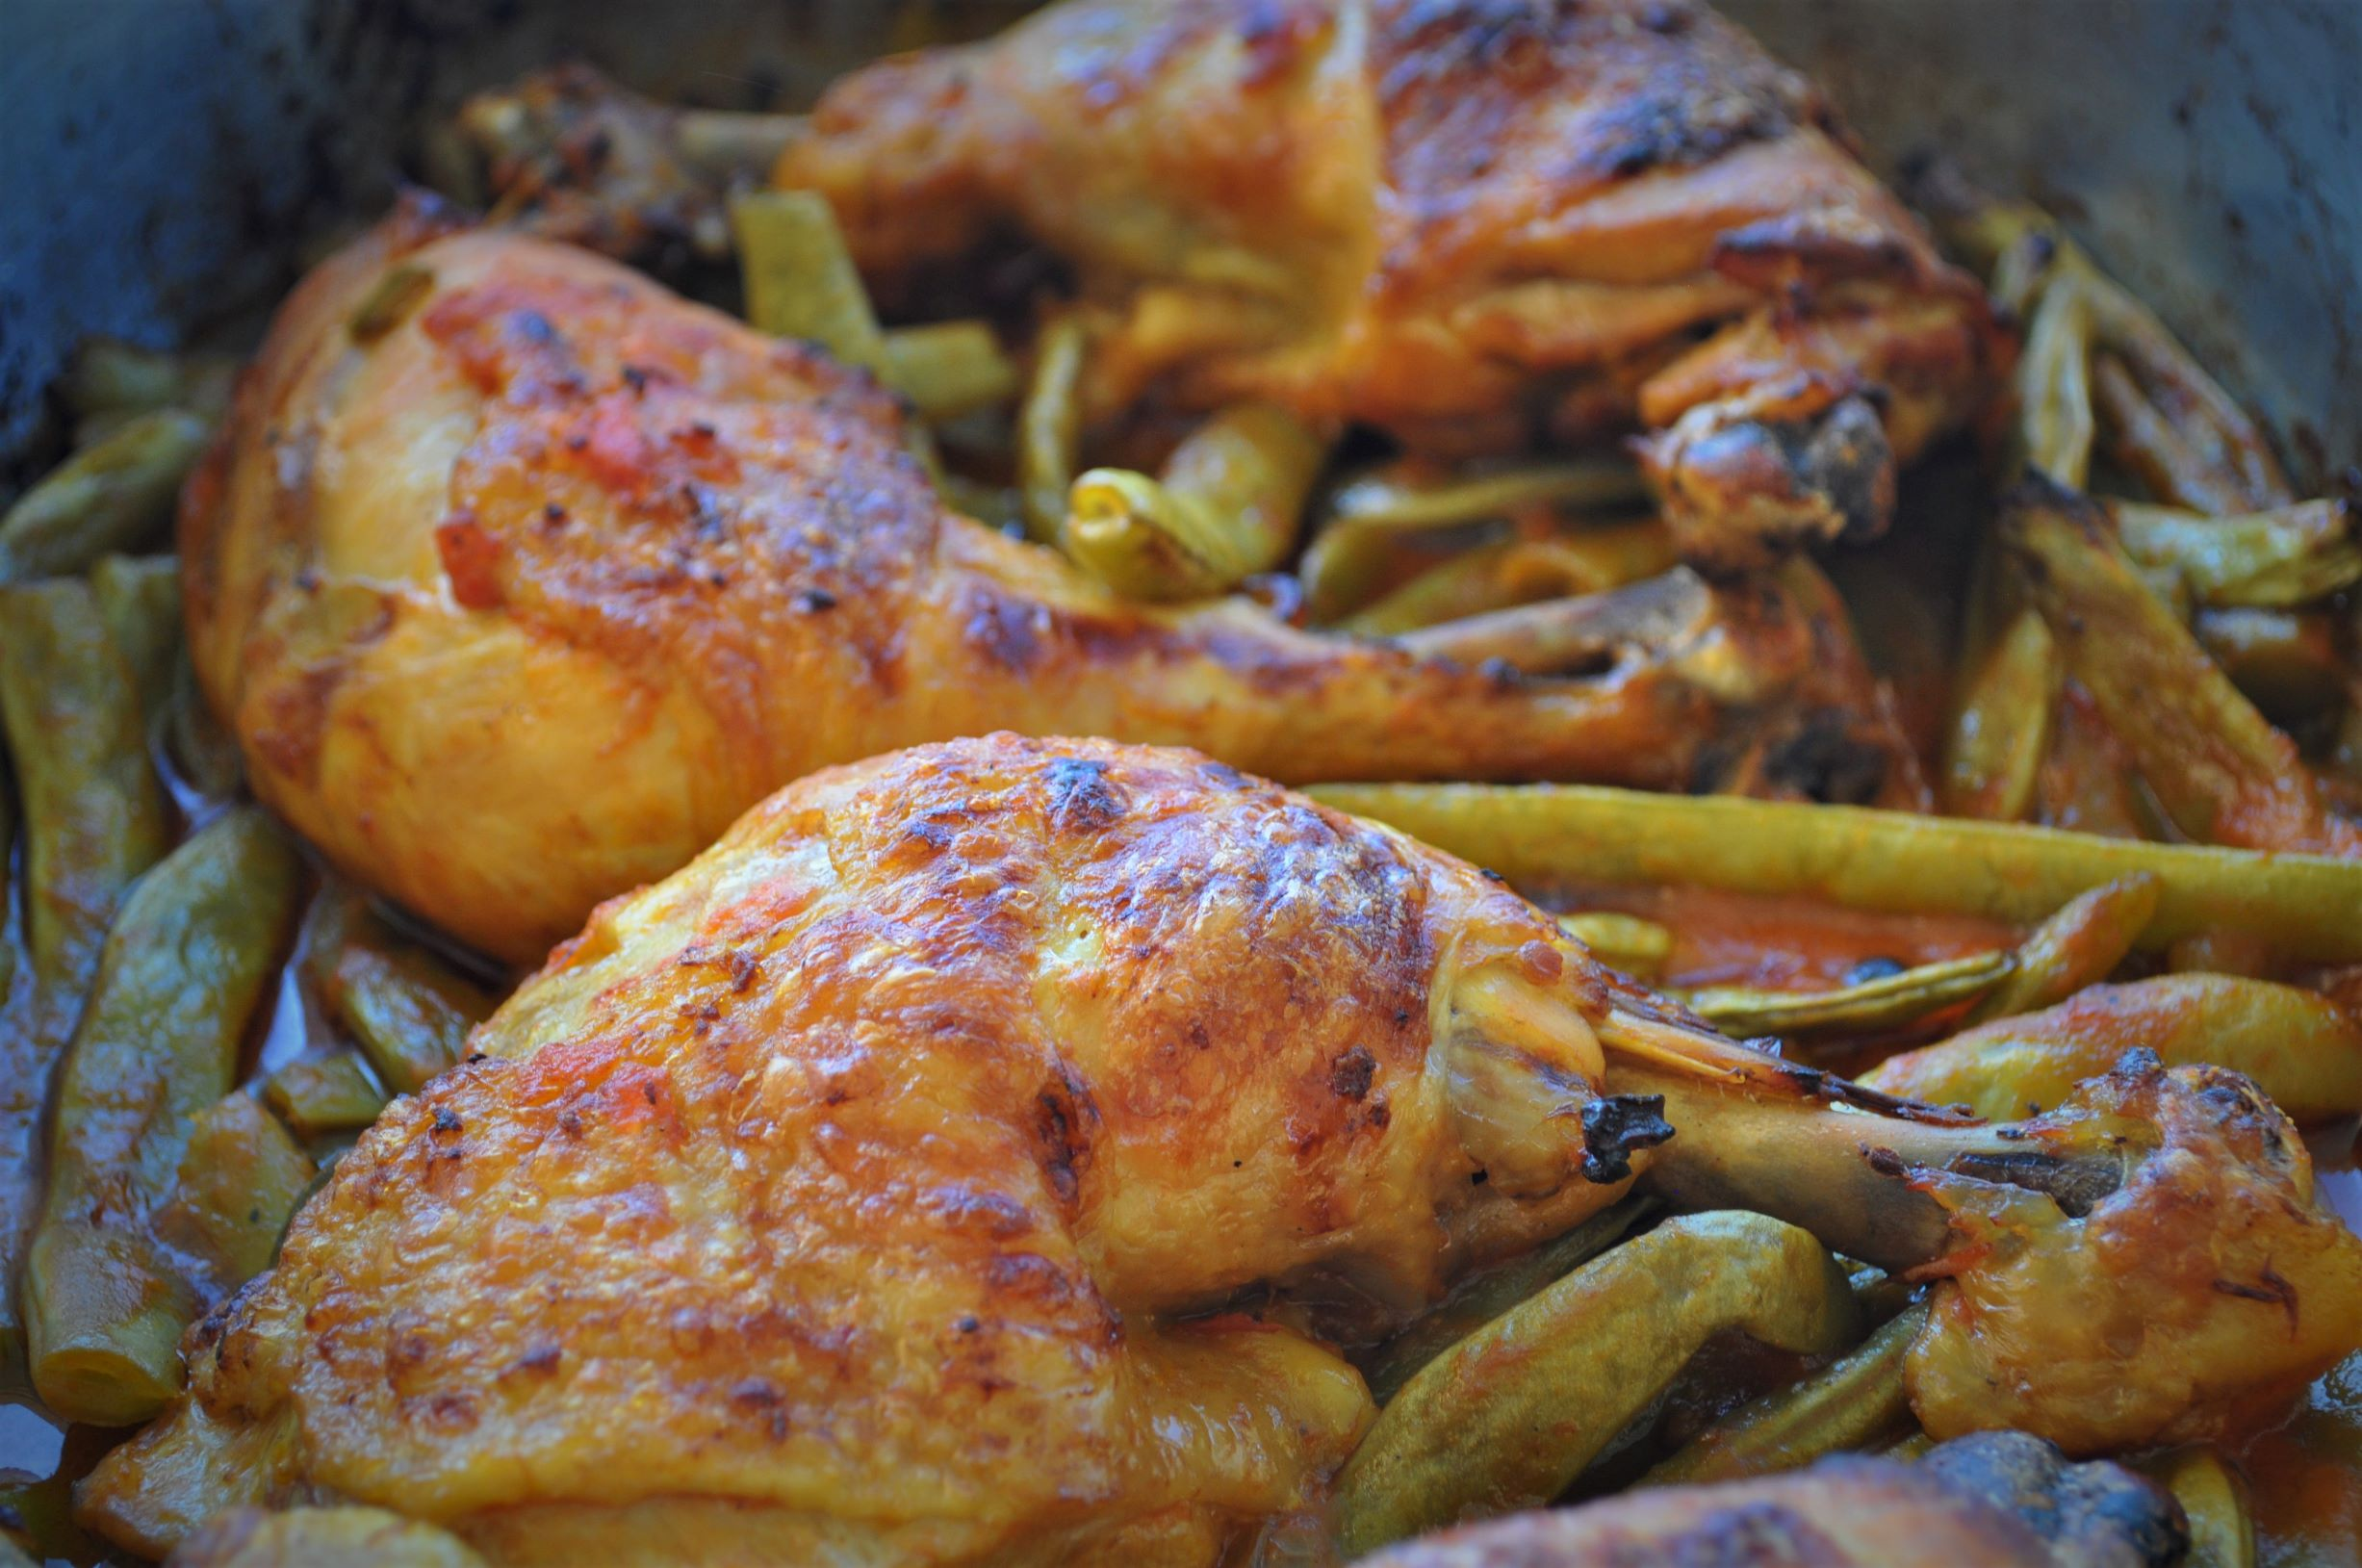 Free-range chicken with runner beans